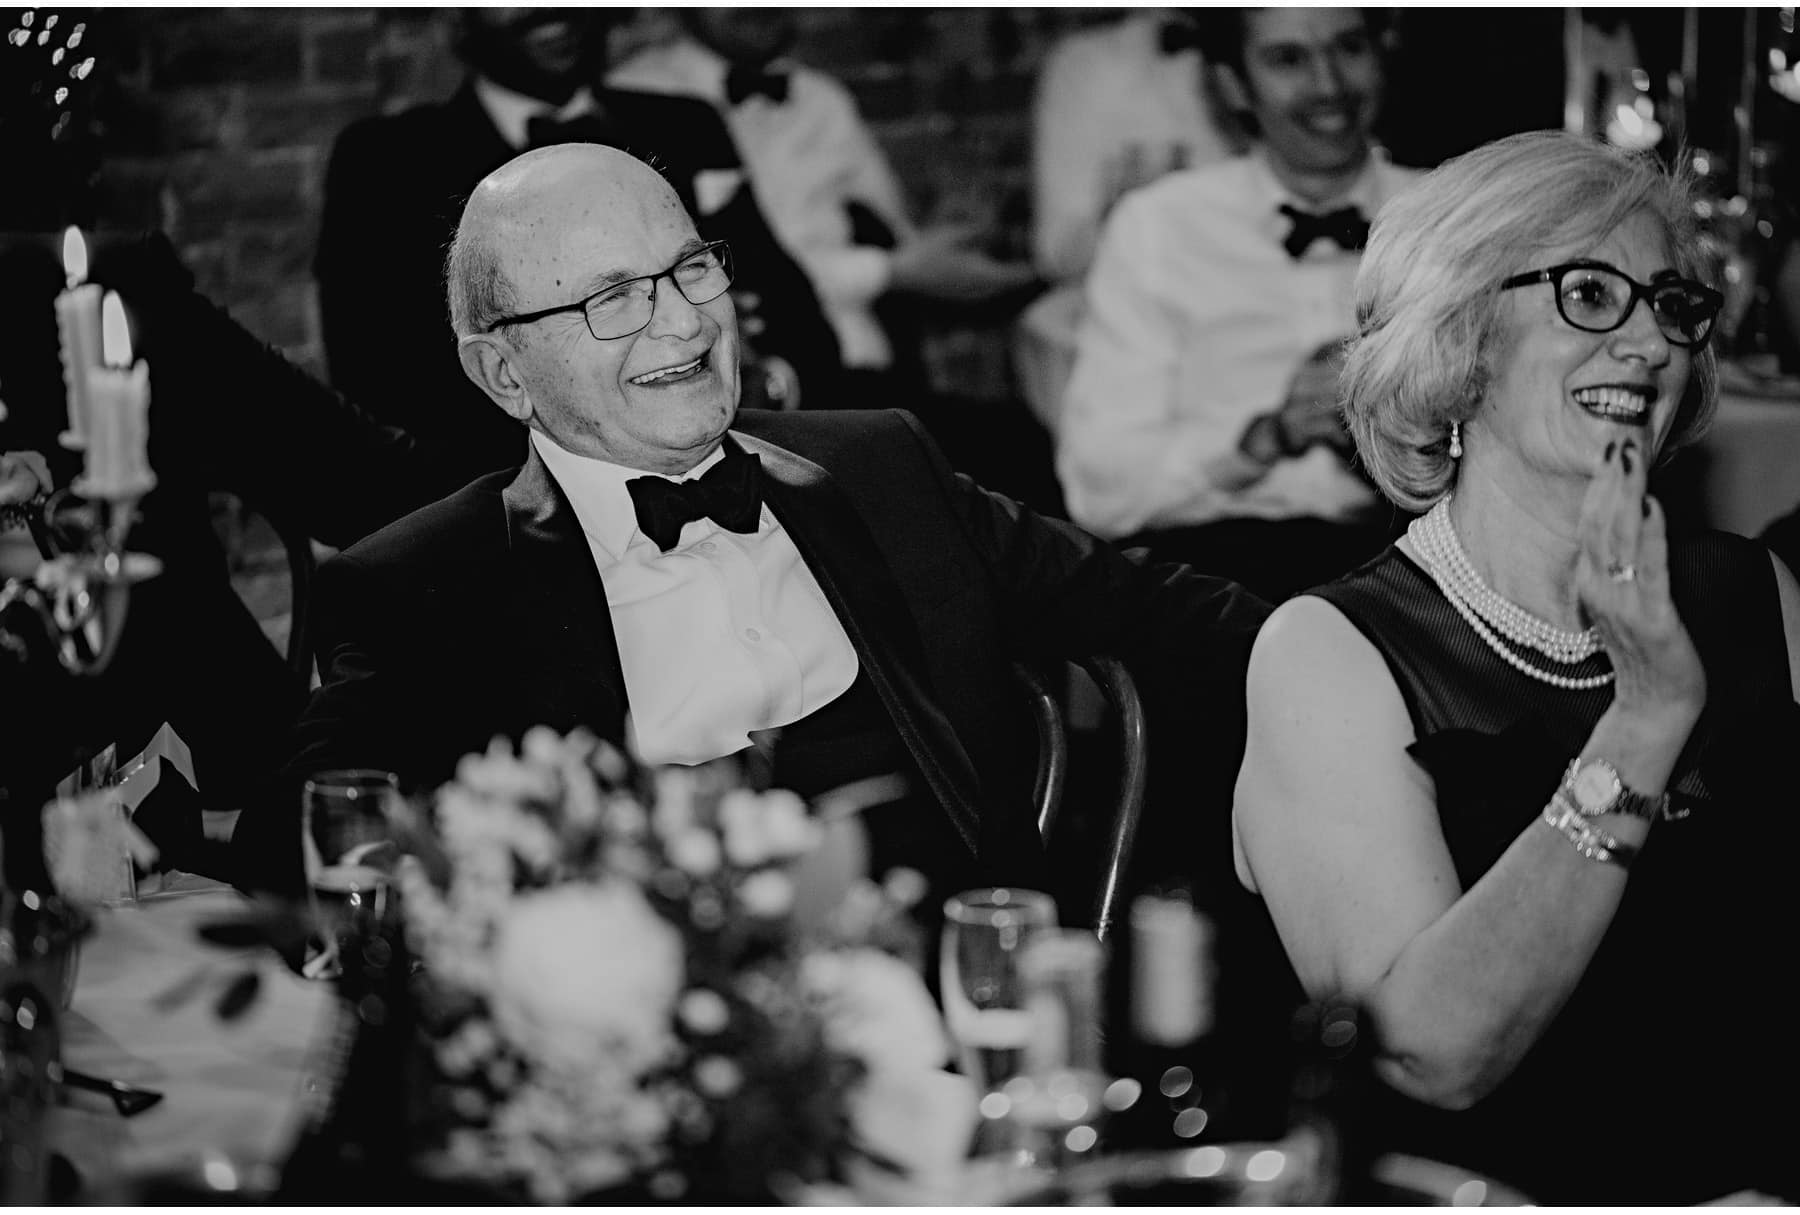 The groom's father laughing at speeches